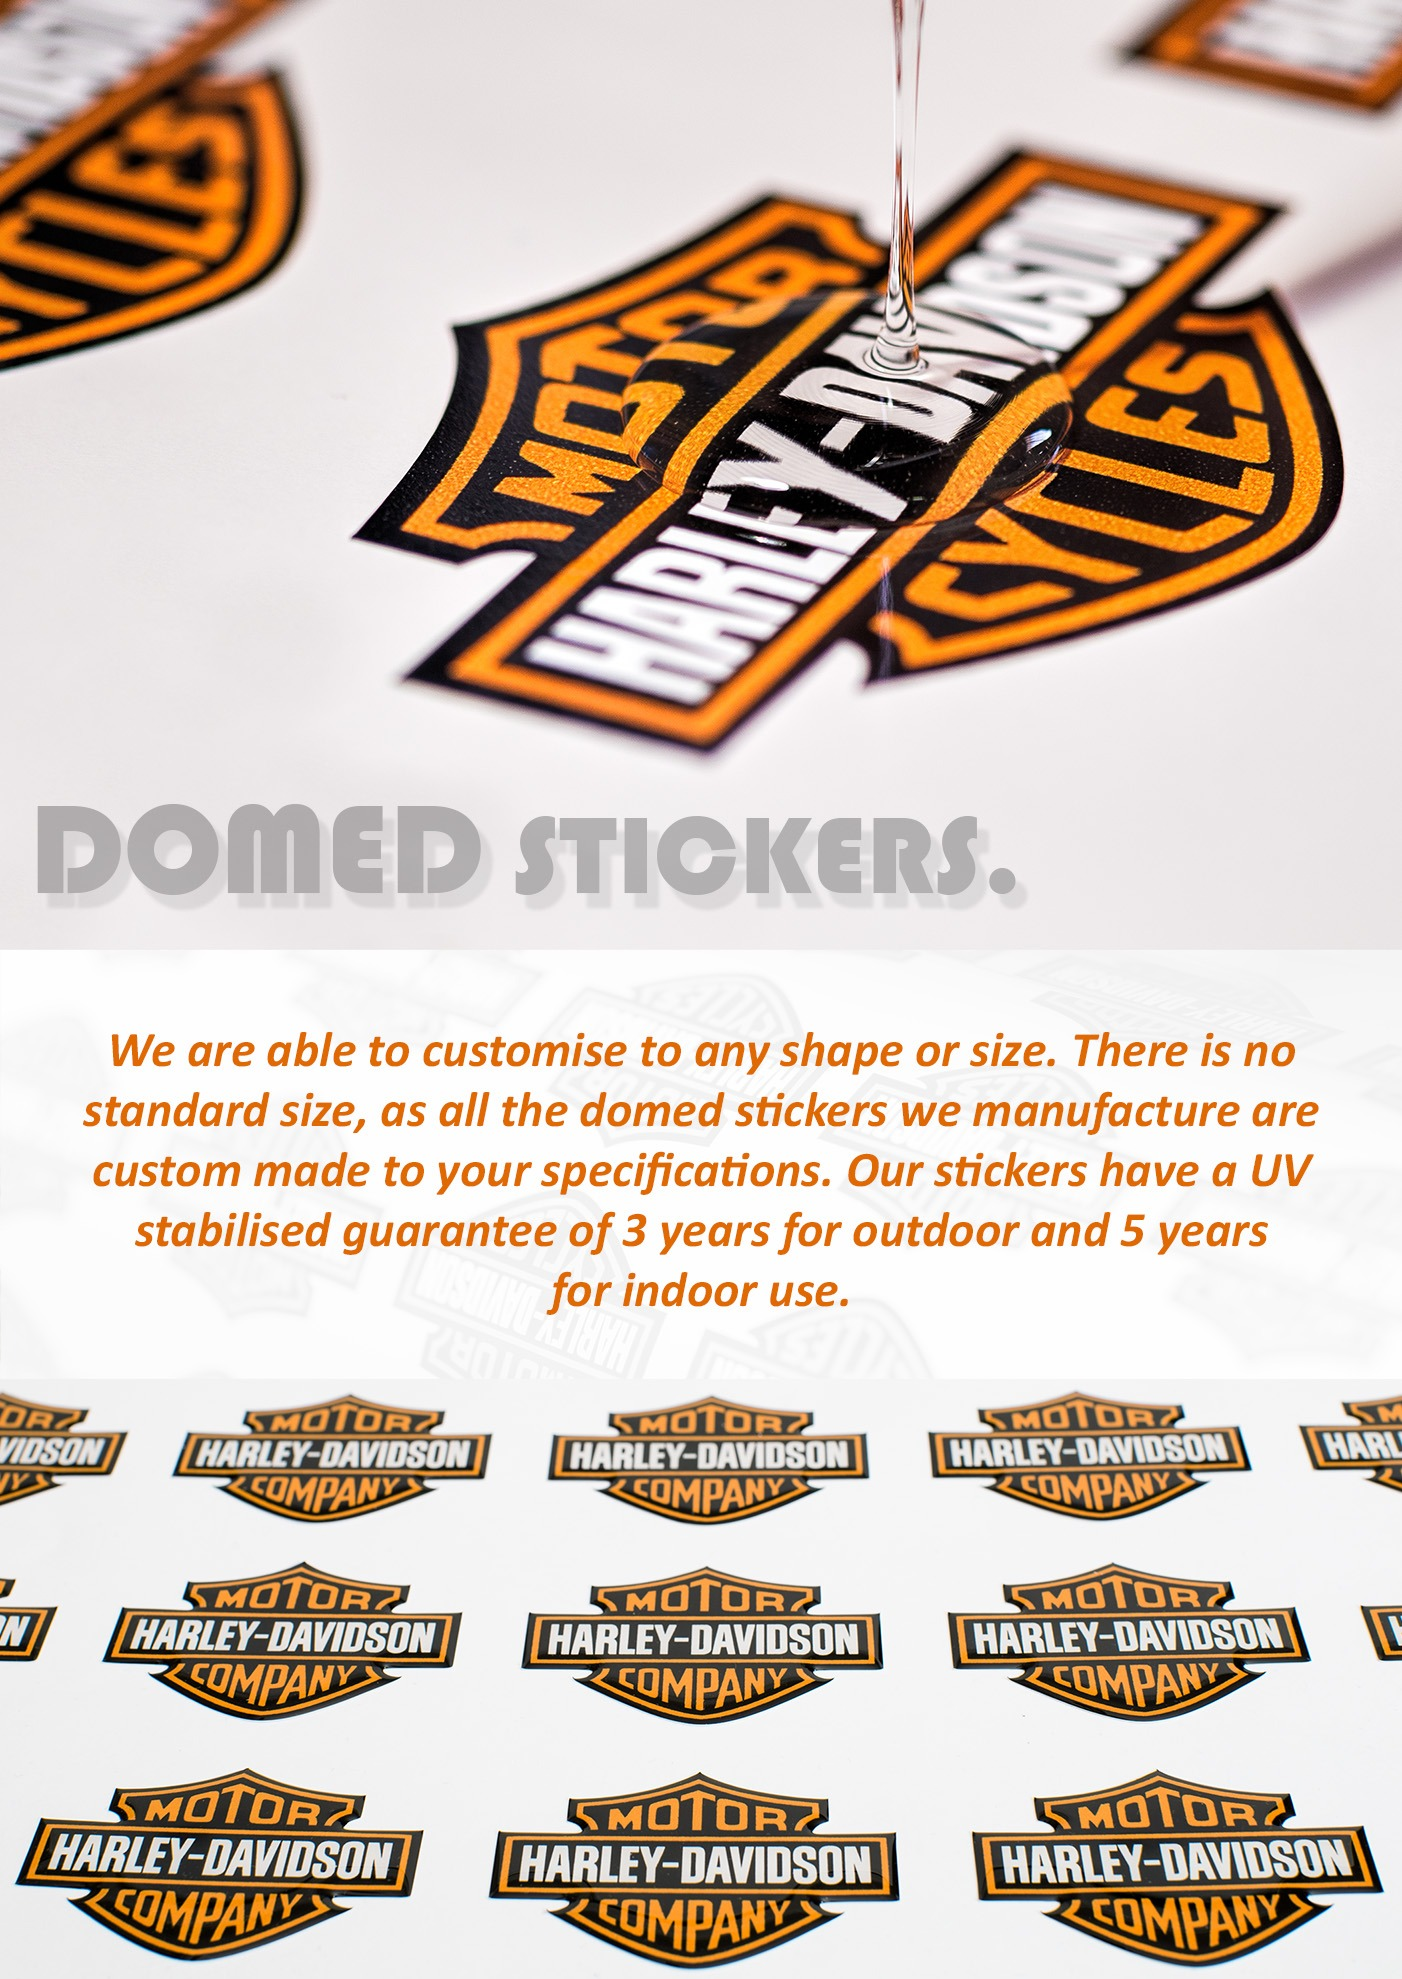 Domed stickers can be customised to an shape or size